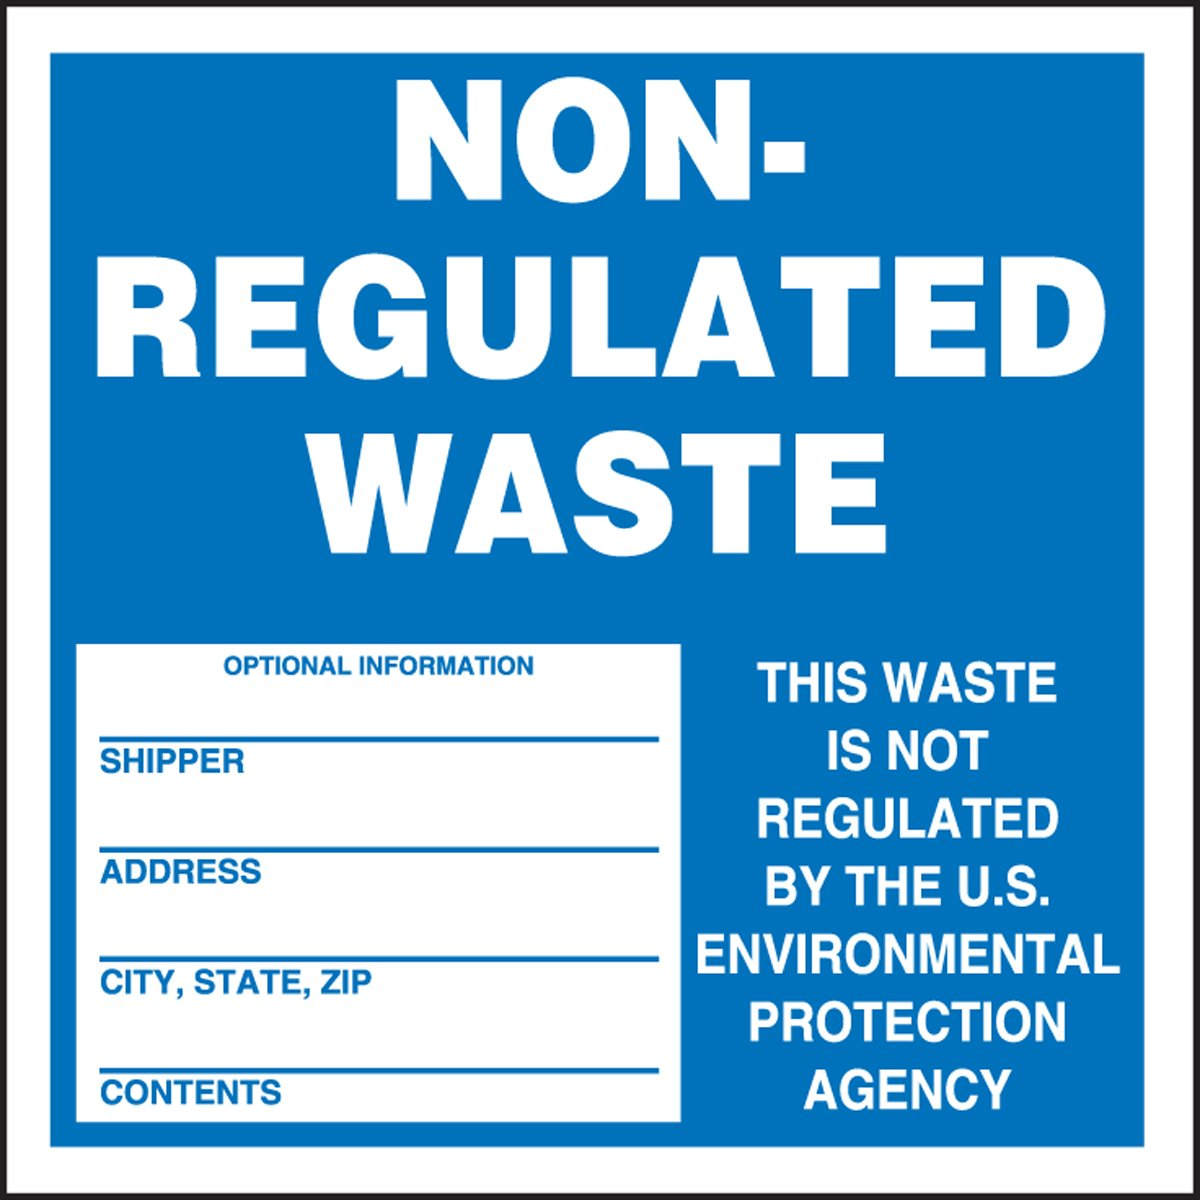 6 Length x 6 Width x 2.6 mil Thickness Legend NON-REGULATED WASTE Accuform MHZW14EVC Adhesive-Poly Vinyl Hazardous Waste Label ENVIRONMENTAL PROTECTION AGENCY THIS WASTE IS NOT REGULATED BY THE U.S Pack of 100 Blue//White